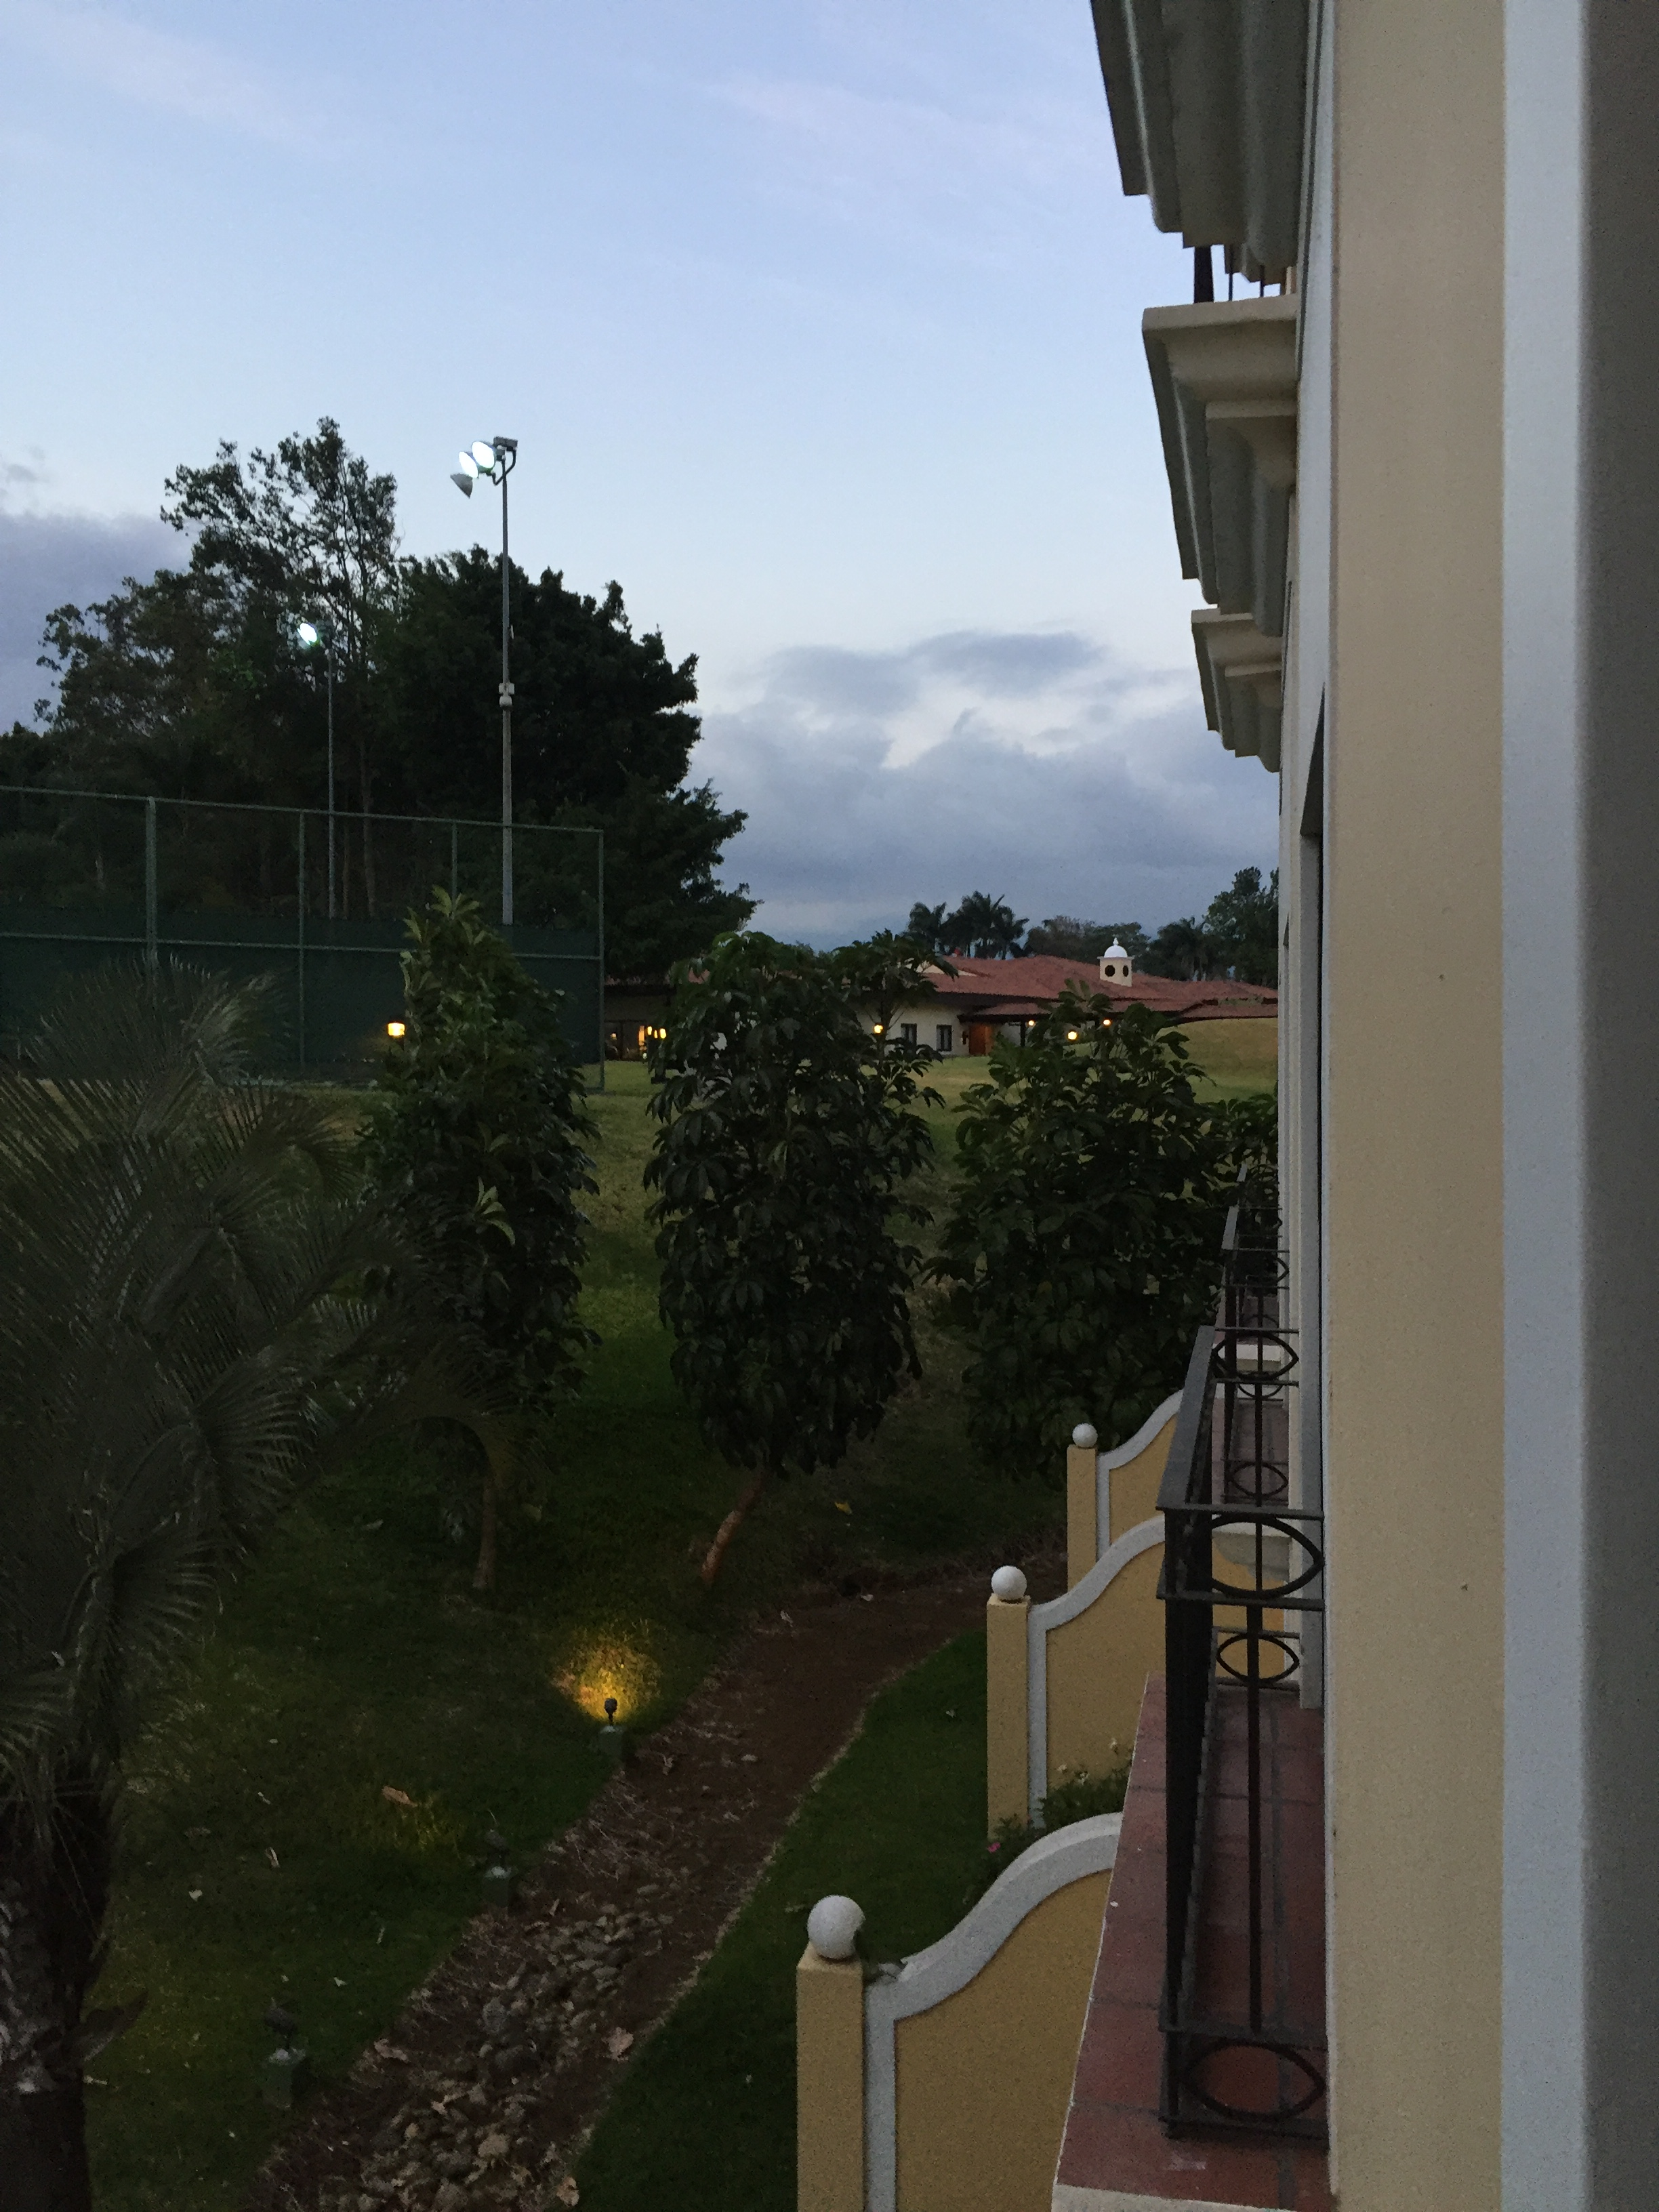 Located close to the San Jose airport, the view from a guestroom in the Costa Rica Marriott San Jose is surprisingly pastoral. Photo credit: M. Ciavardini